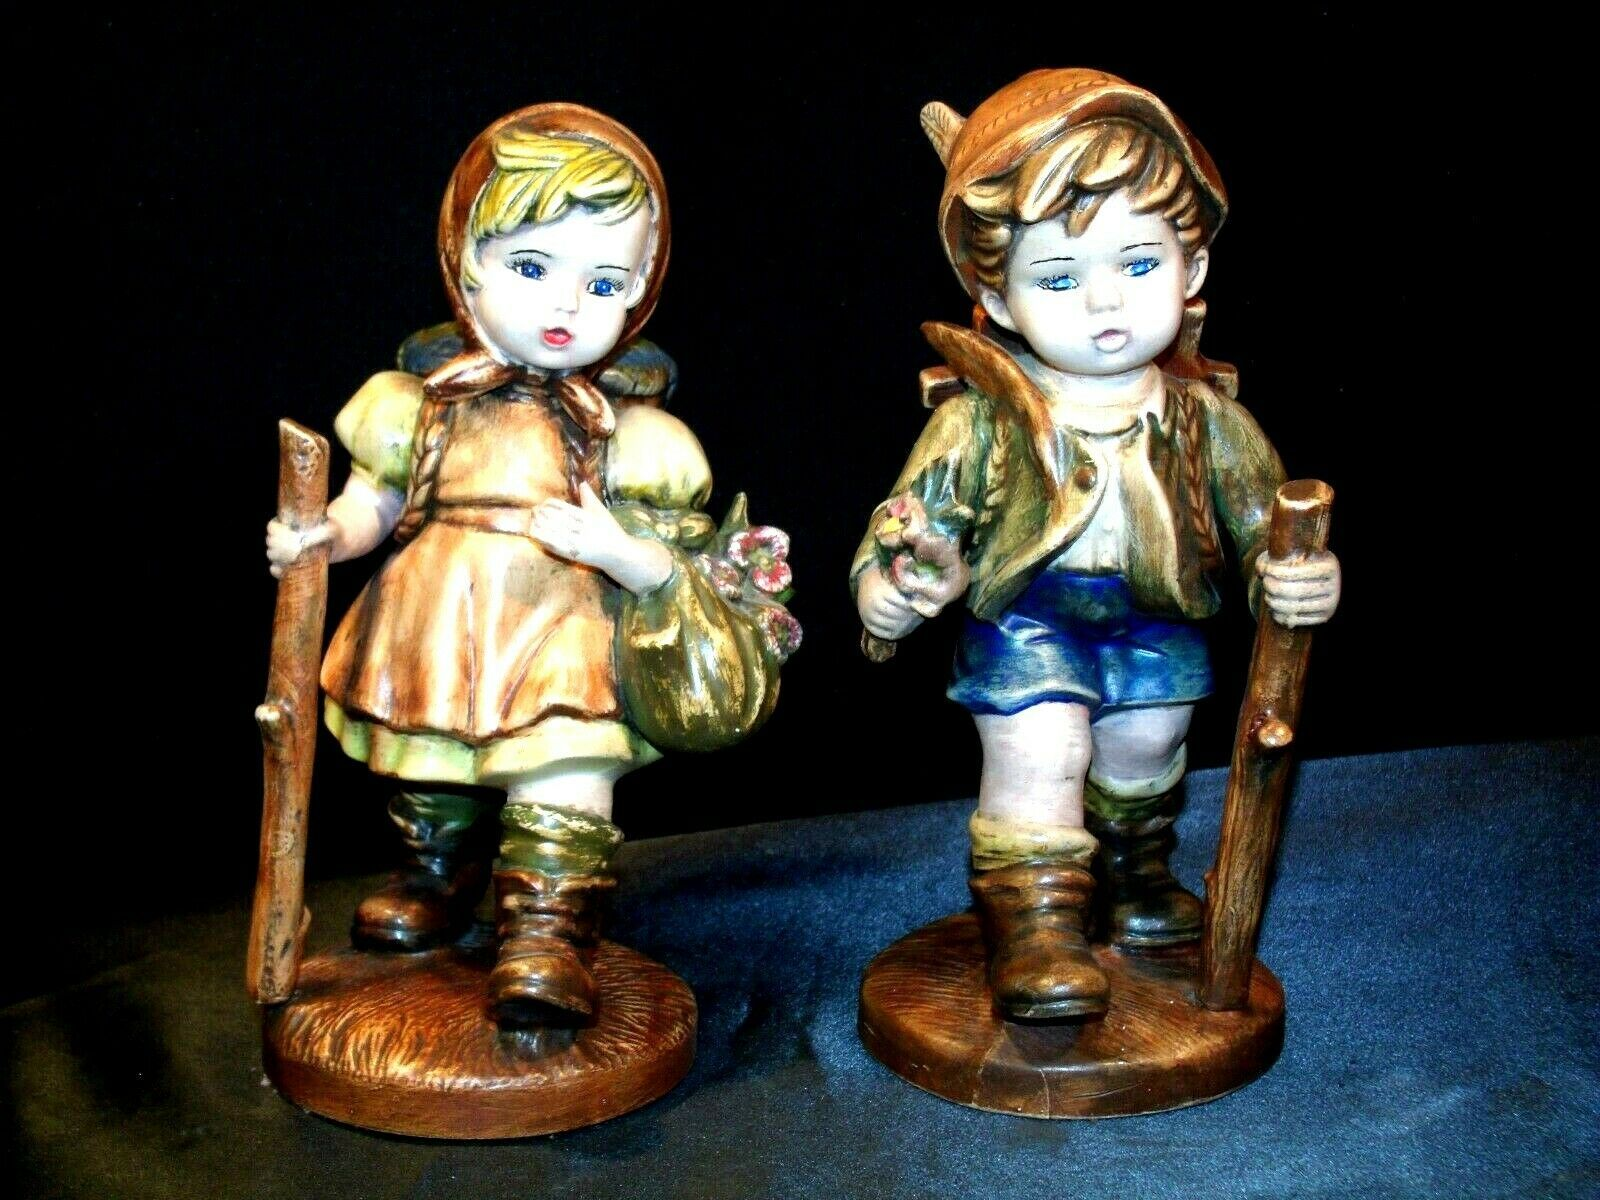 Swiss Boy and Girl Figurines Hiking AA18-1194 Vintage Collectible